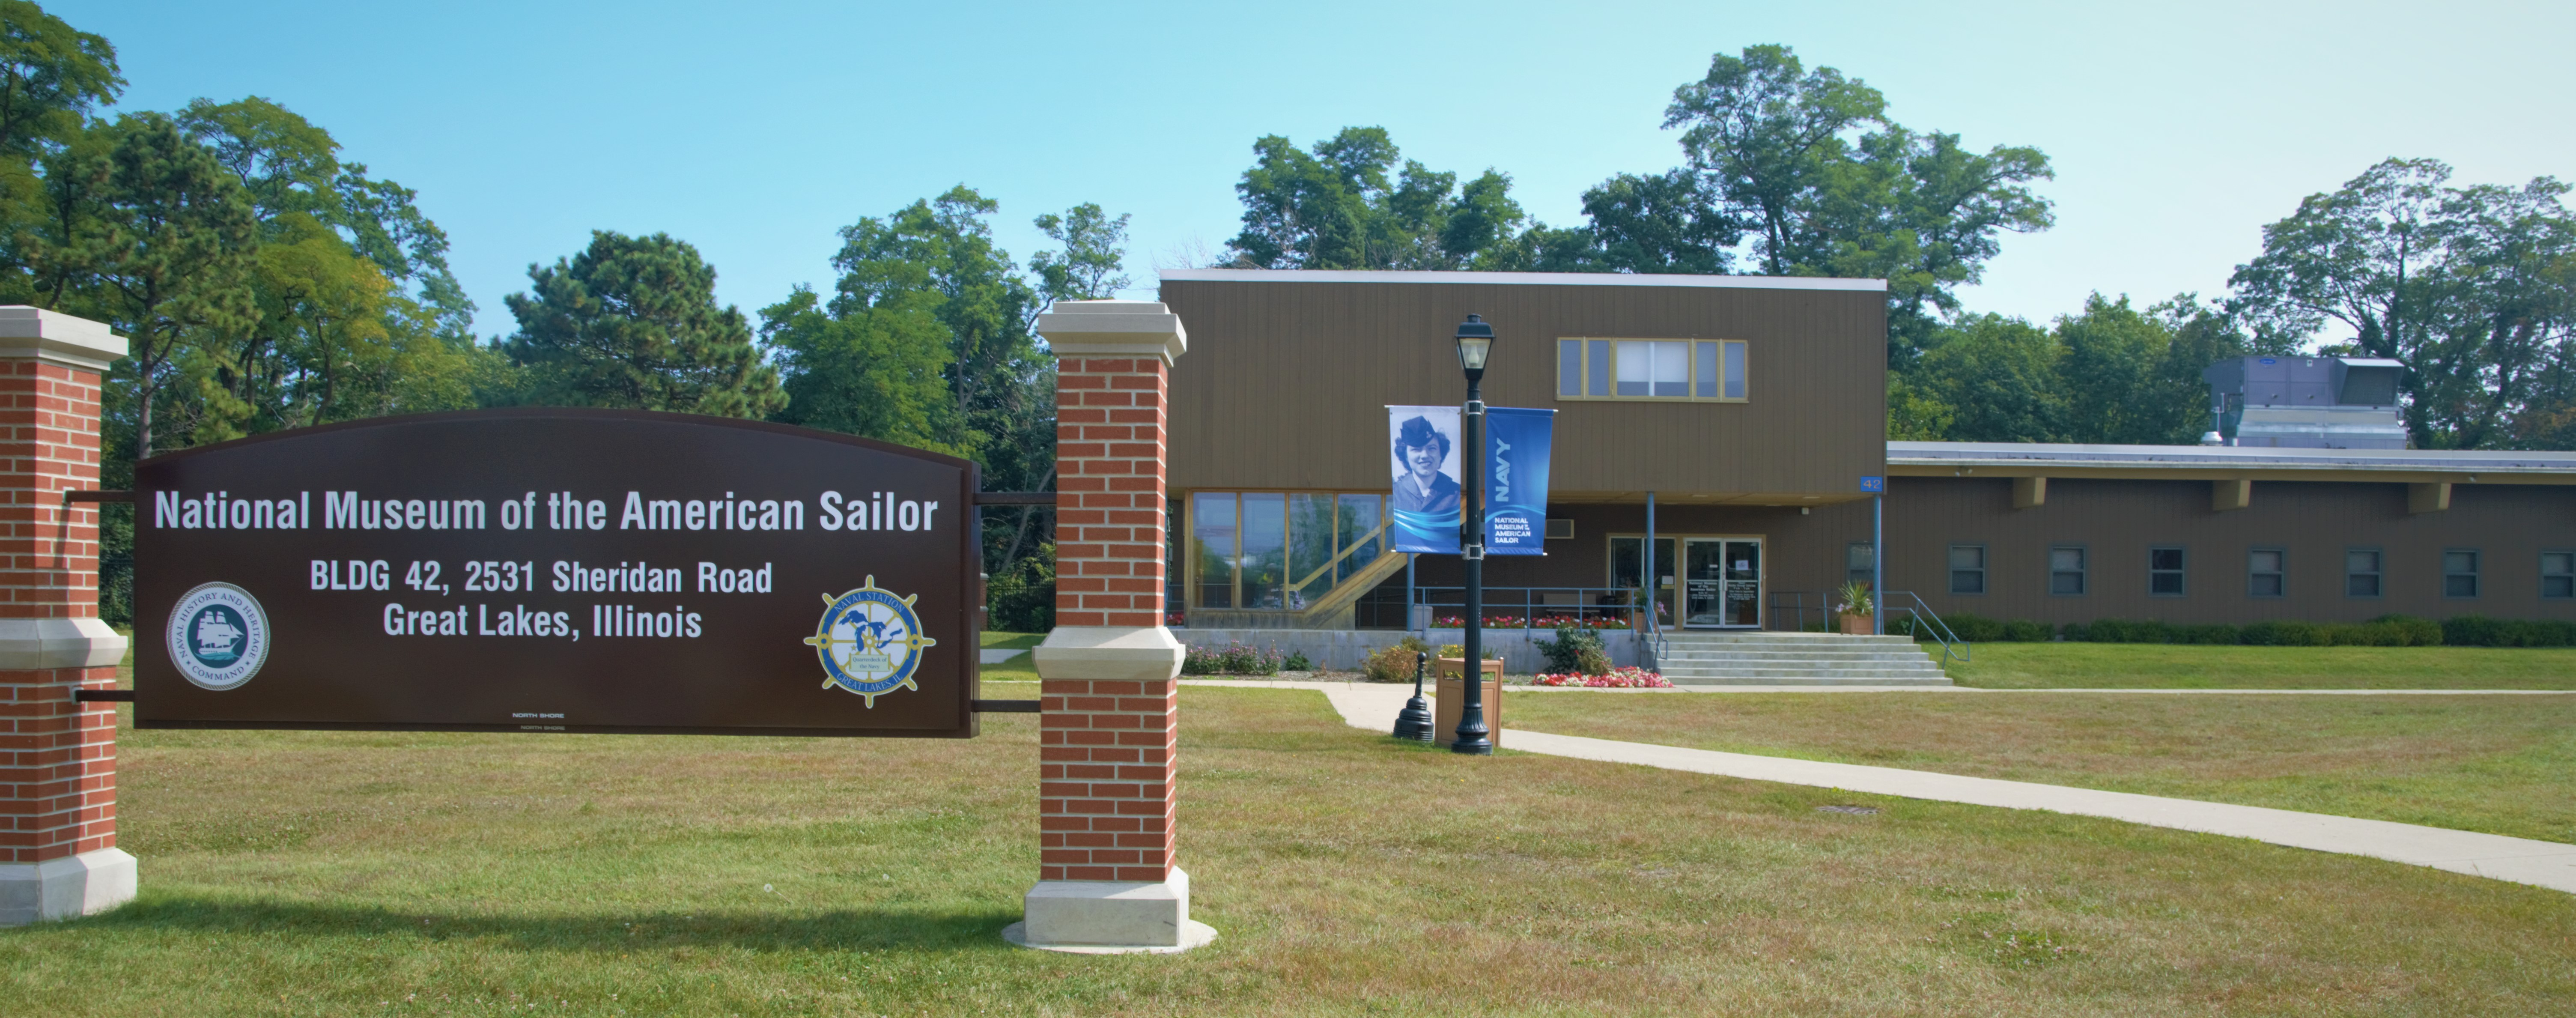 national museum of the american sailor great lakes illinois